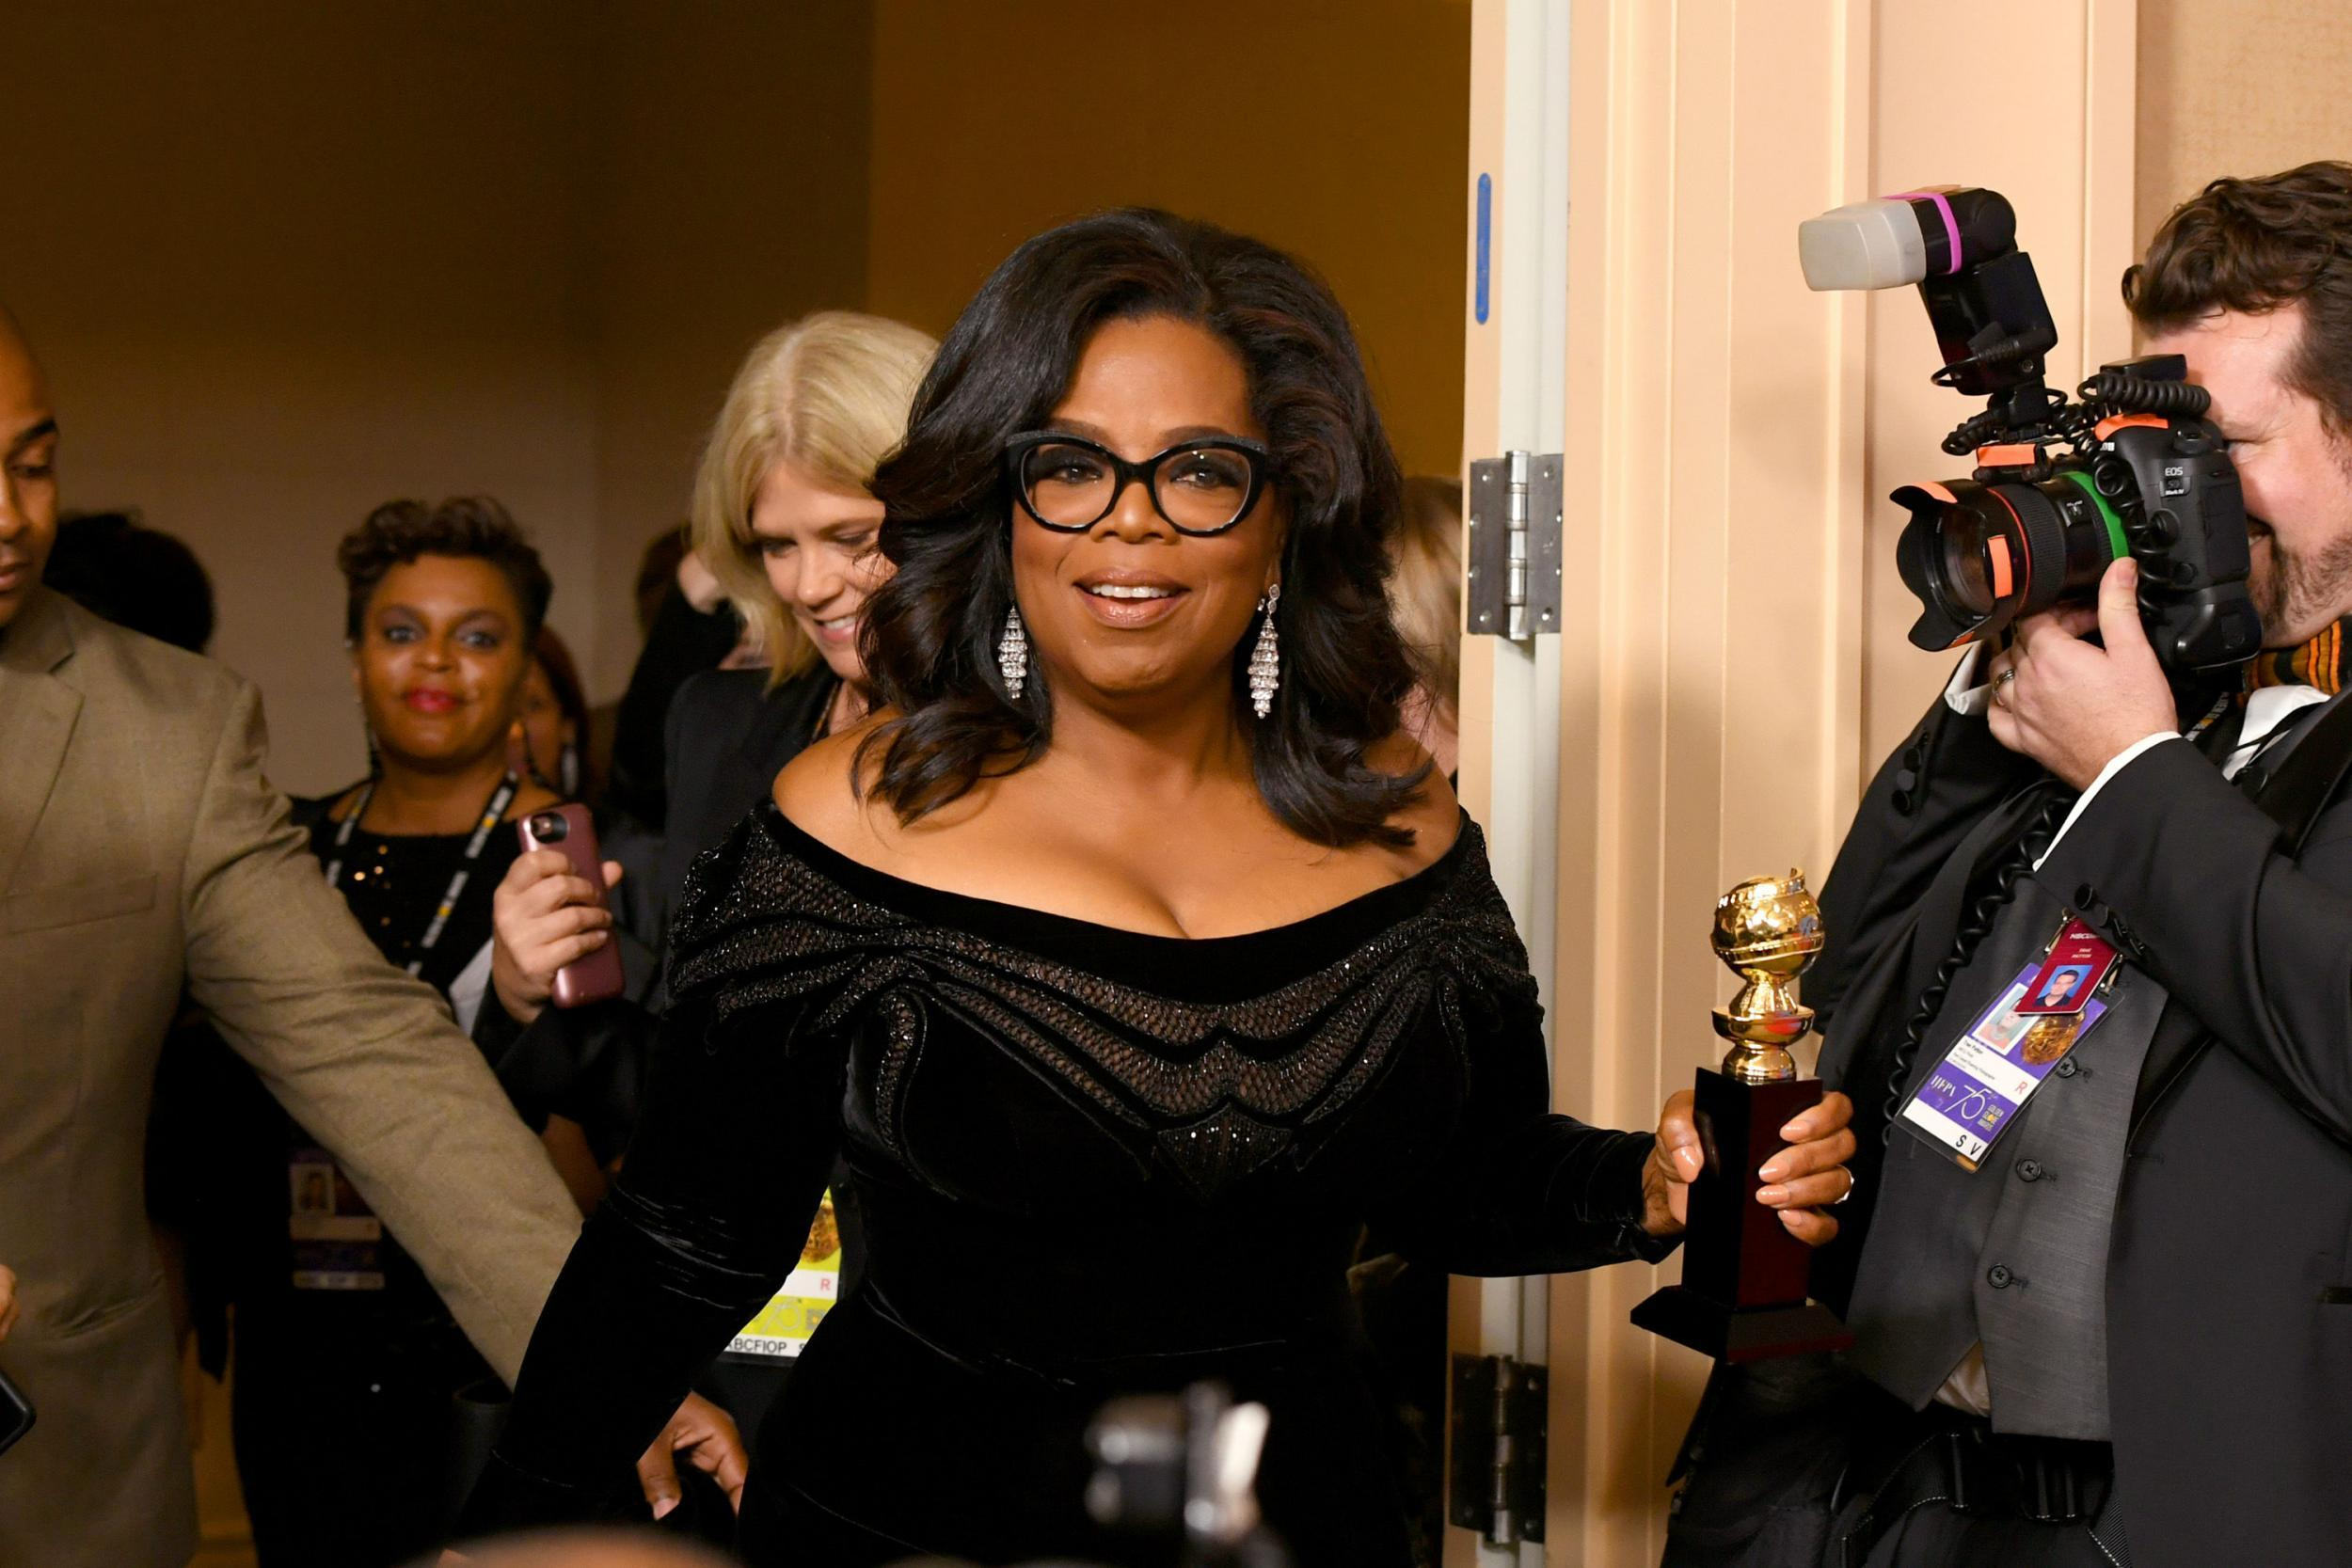 Oprah Winfrey is 'actively considering' running for president in 2020